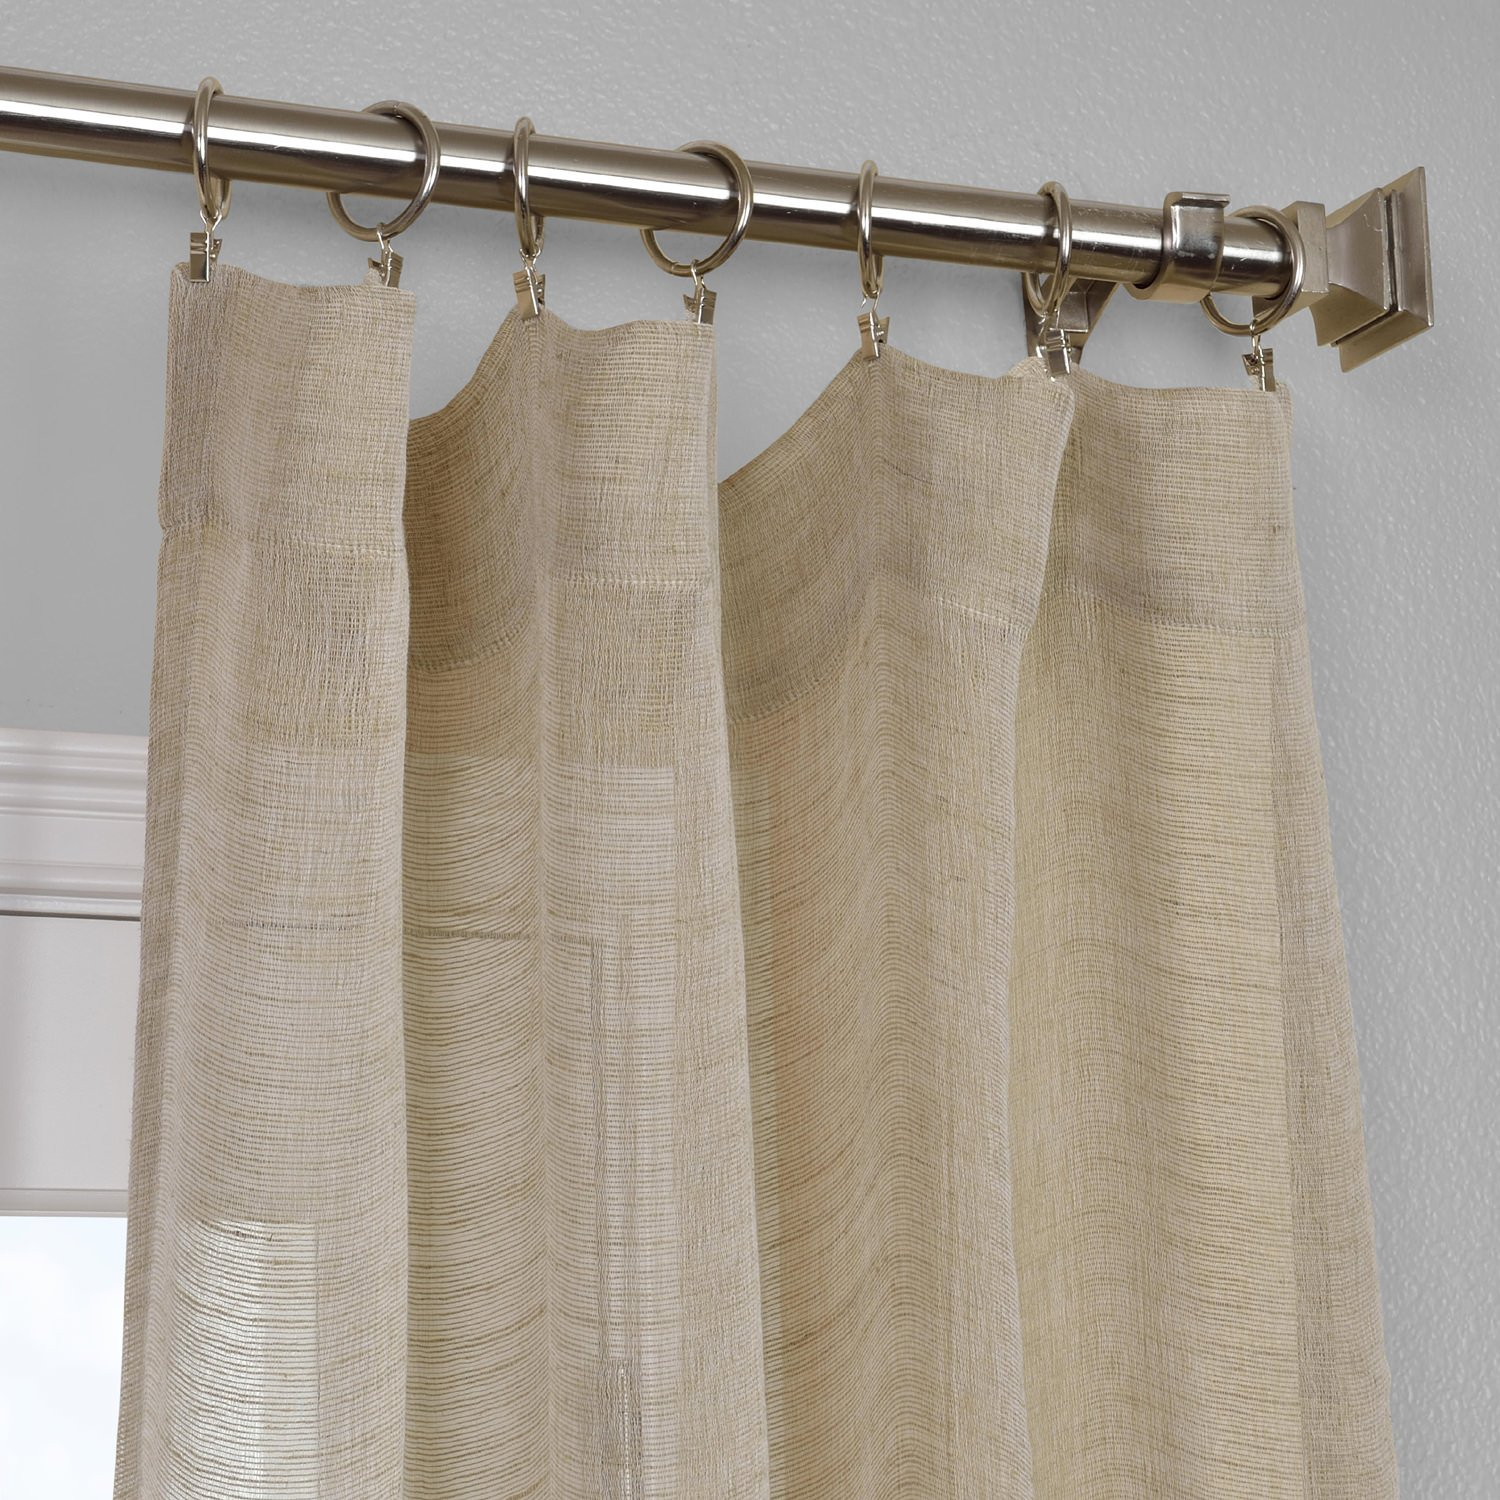 basketweave curtains grommet blackout woven window p curtain drapes textured top carling linen